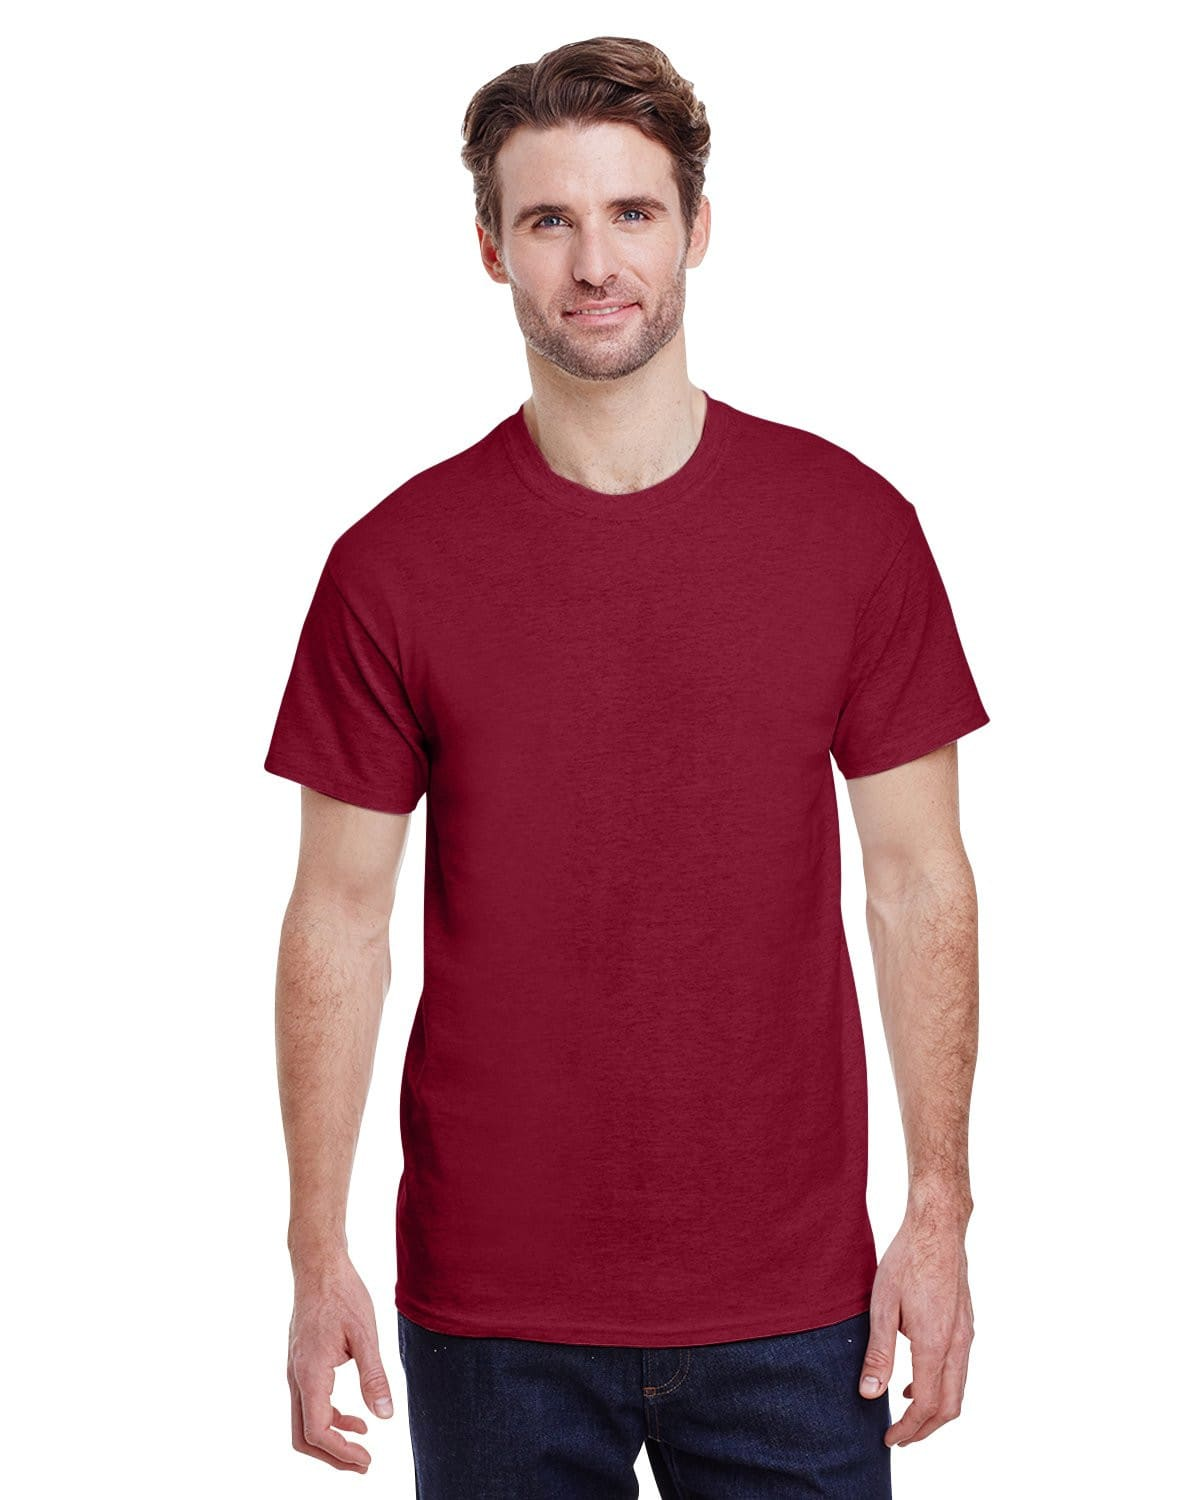 g200-adult-ultra-cotton-6-oz-t-shirt-2xl-2XL-ANTIQ CHERRY RED-Oasispromos